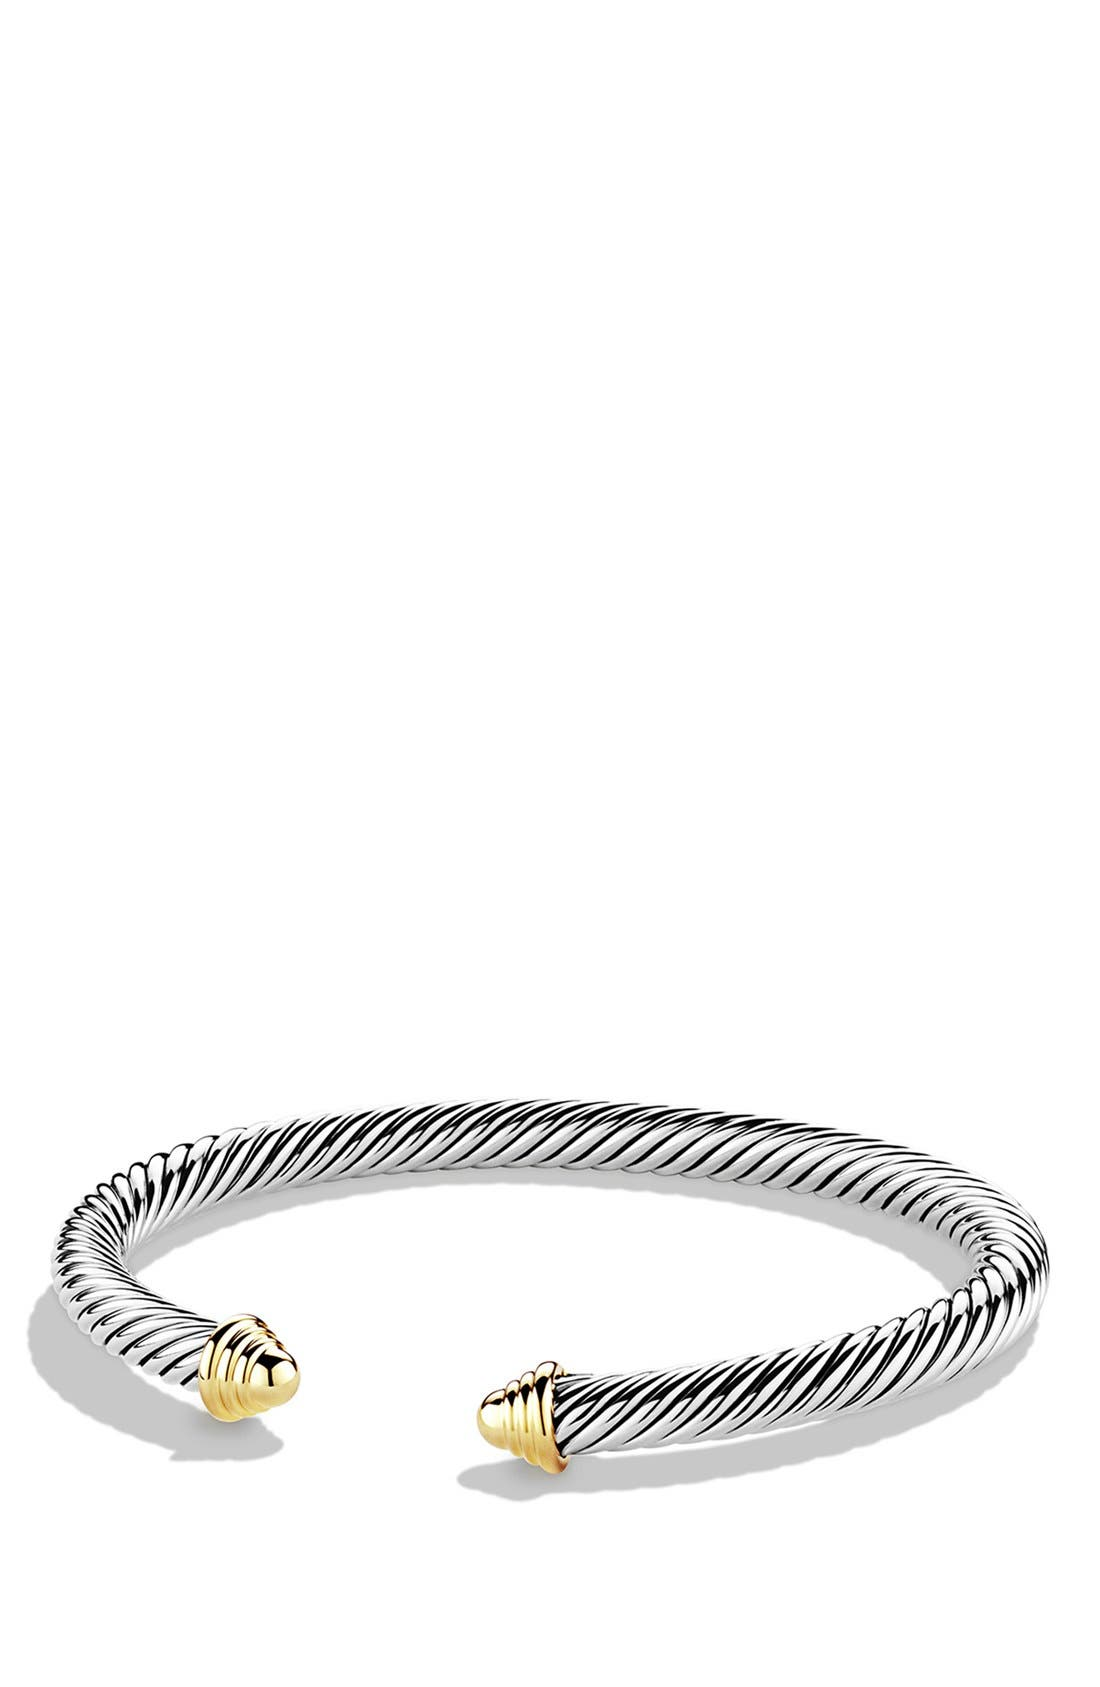 David Yurman 'Cable Classics' Bracelet